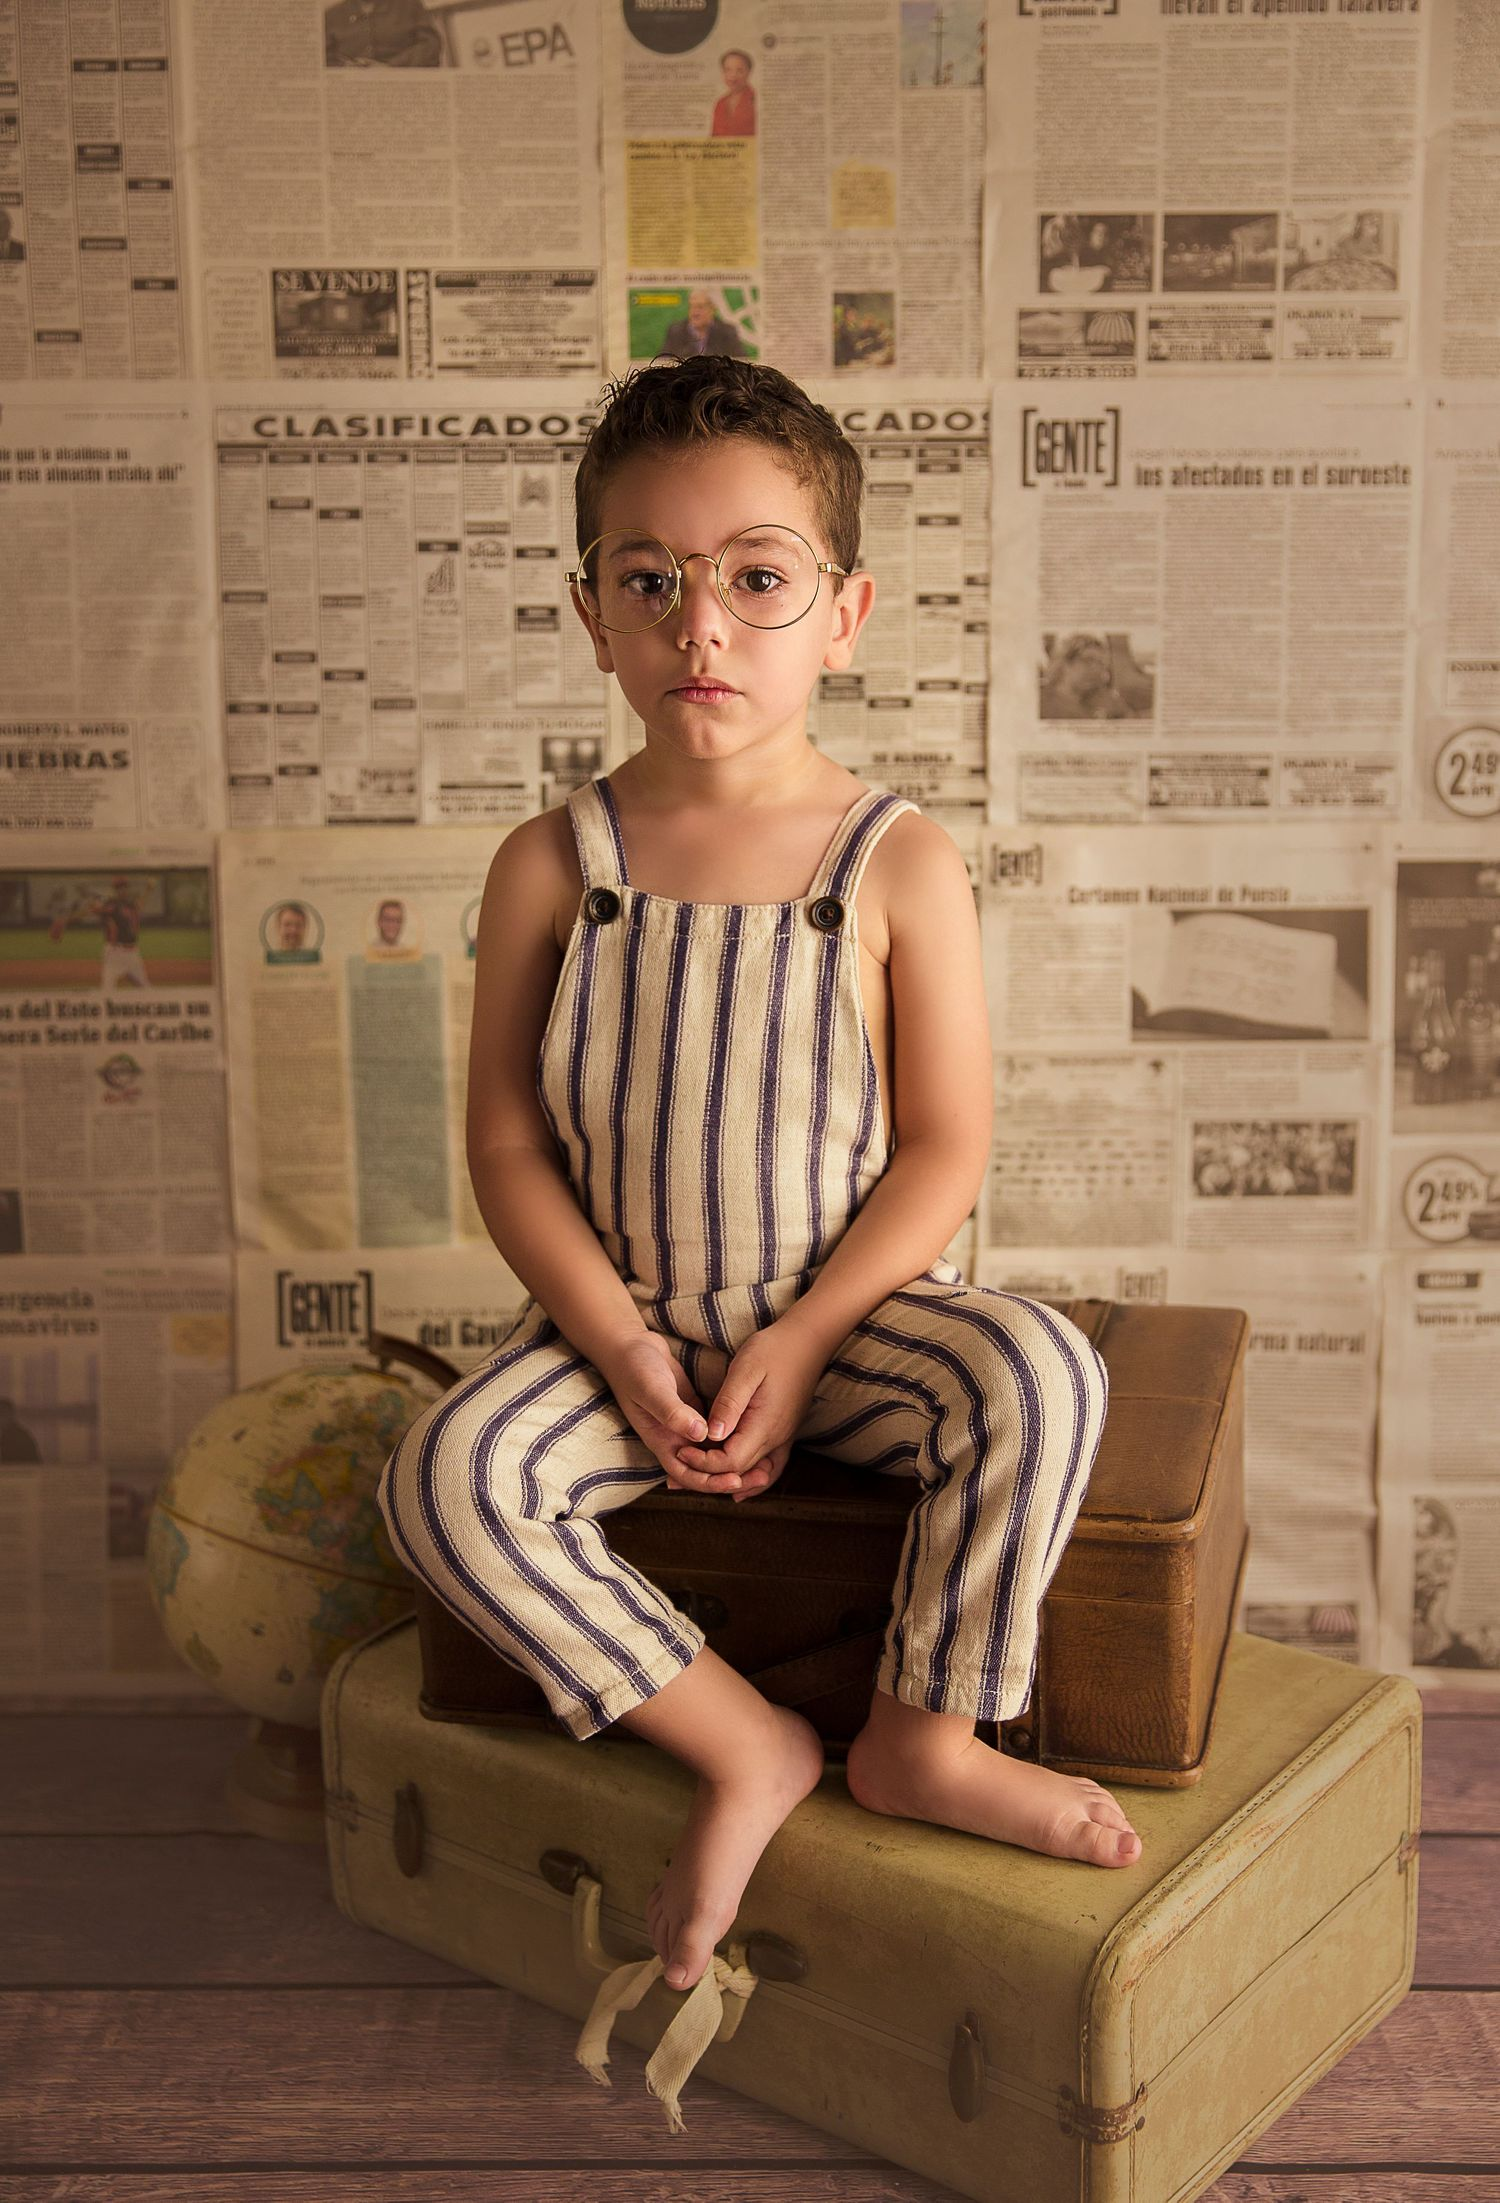 child sits on luggage newspaper backdrop